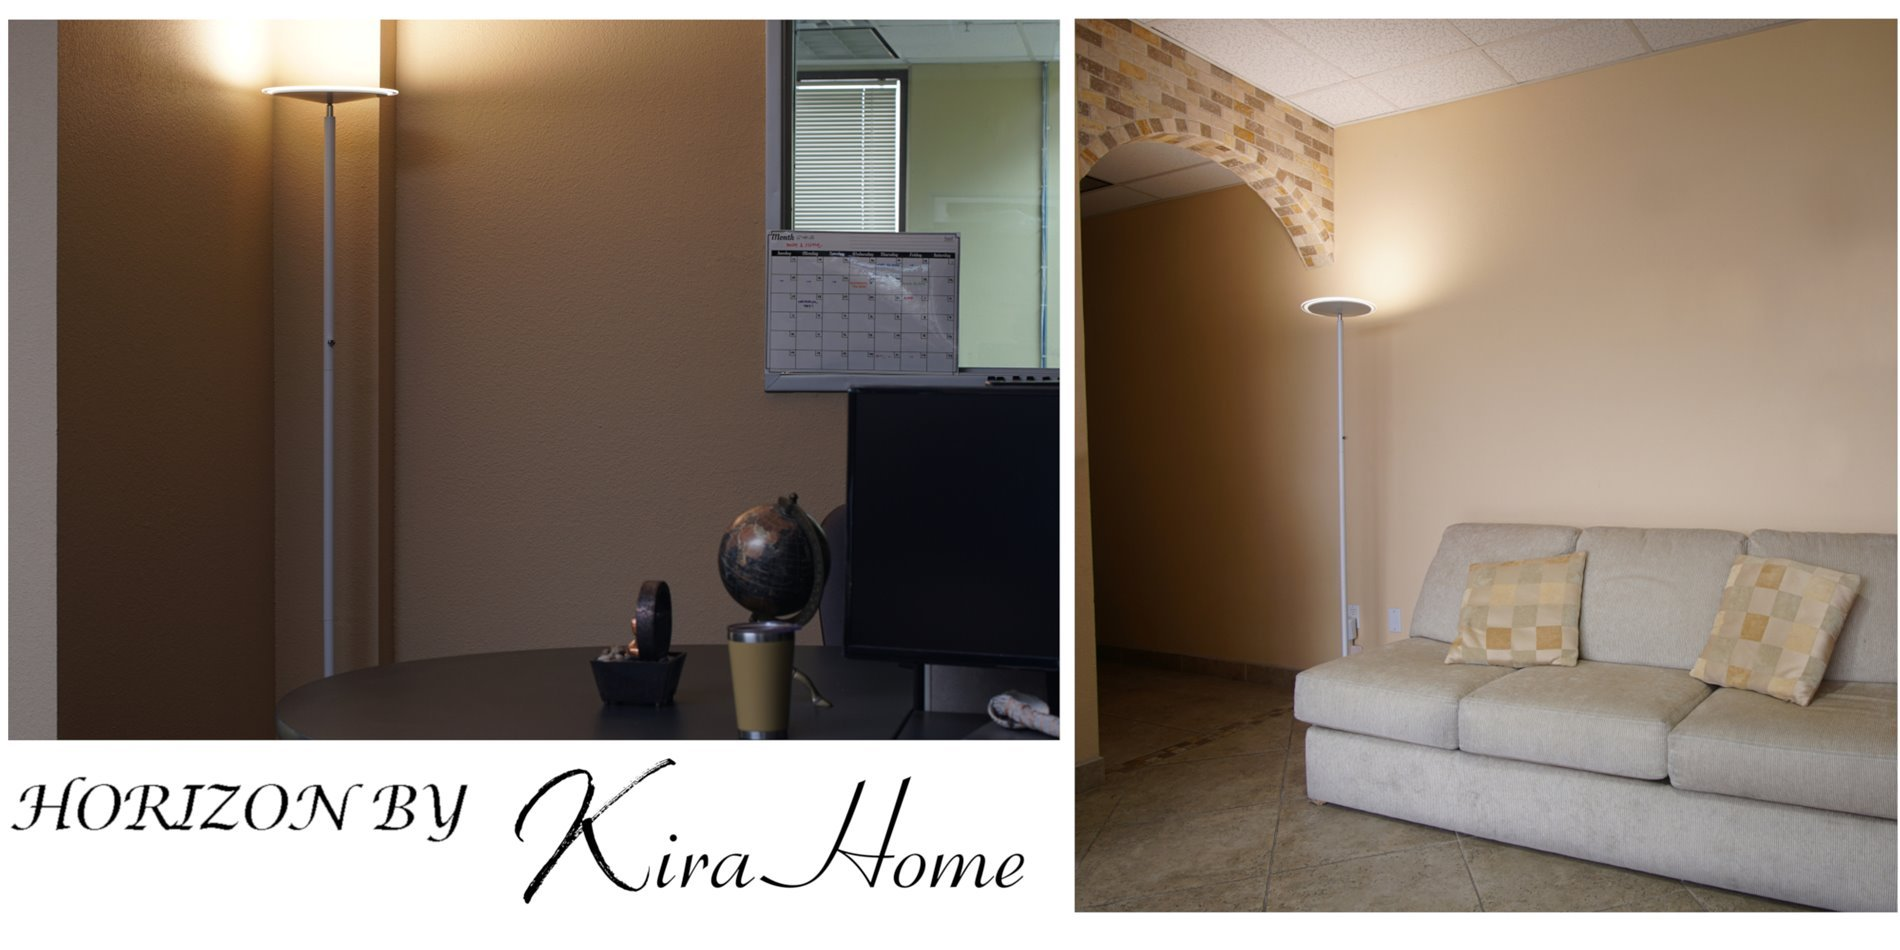 Kira Home Horizon 70'' Modern LED Torchiere Floor Lamp (36W, 300W eq.), Glass Diffuser, Dimmable, Timer and Wall Switch Compatible, Adjustable Head, 3000k Warm White Light, White Finish by Kira Home (Image #4)